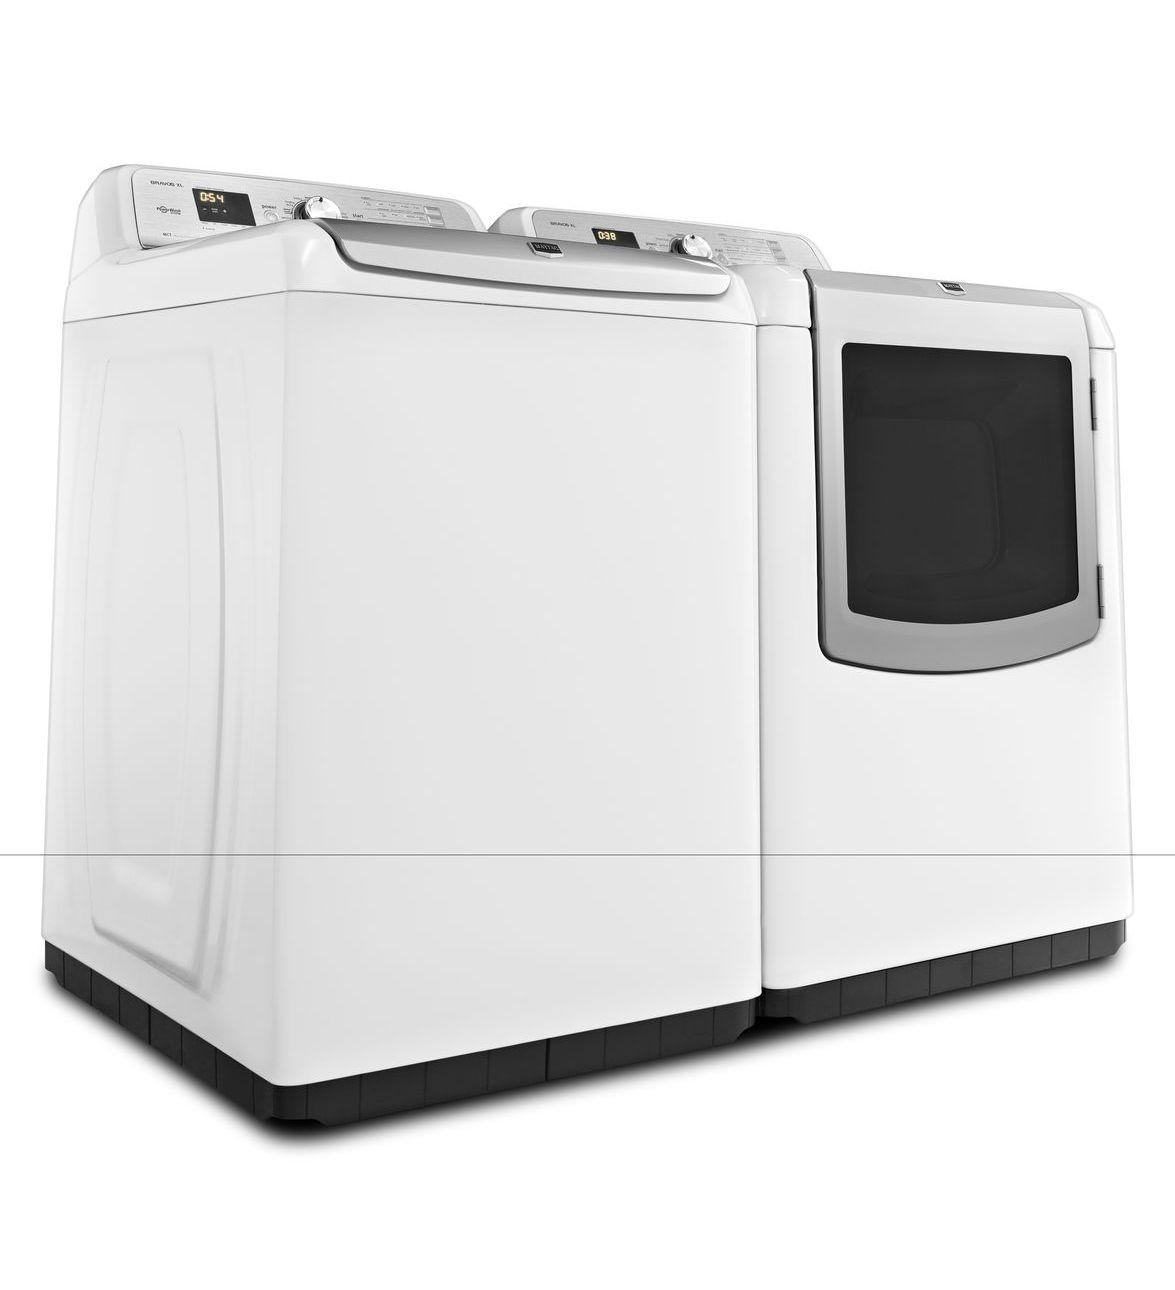 maytag bravos x washer manual